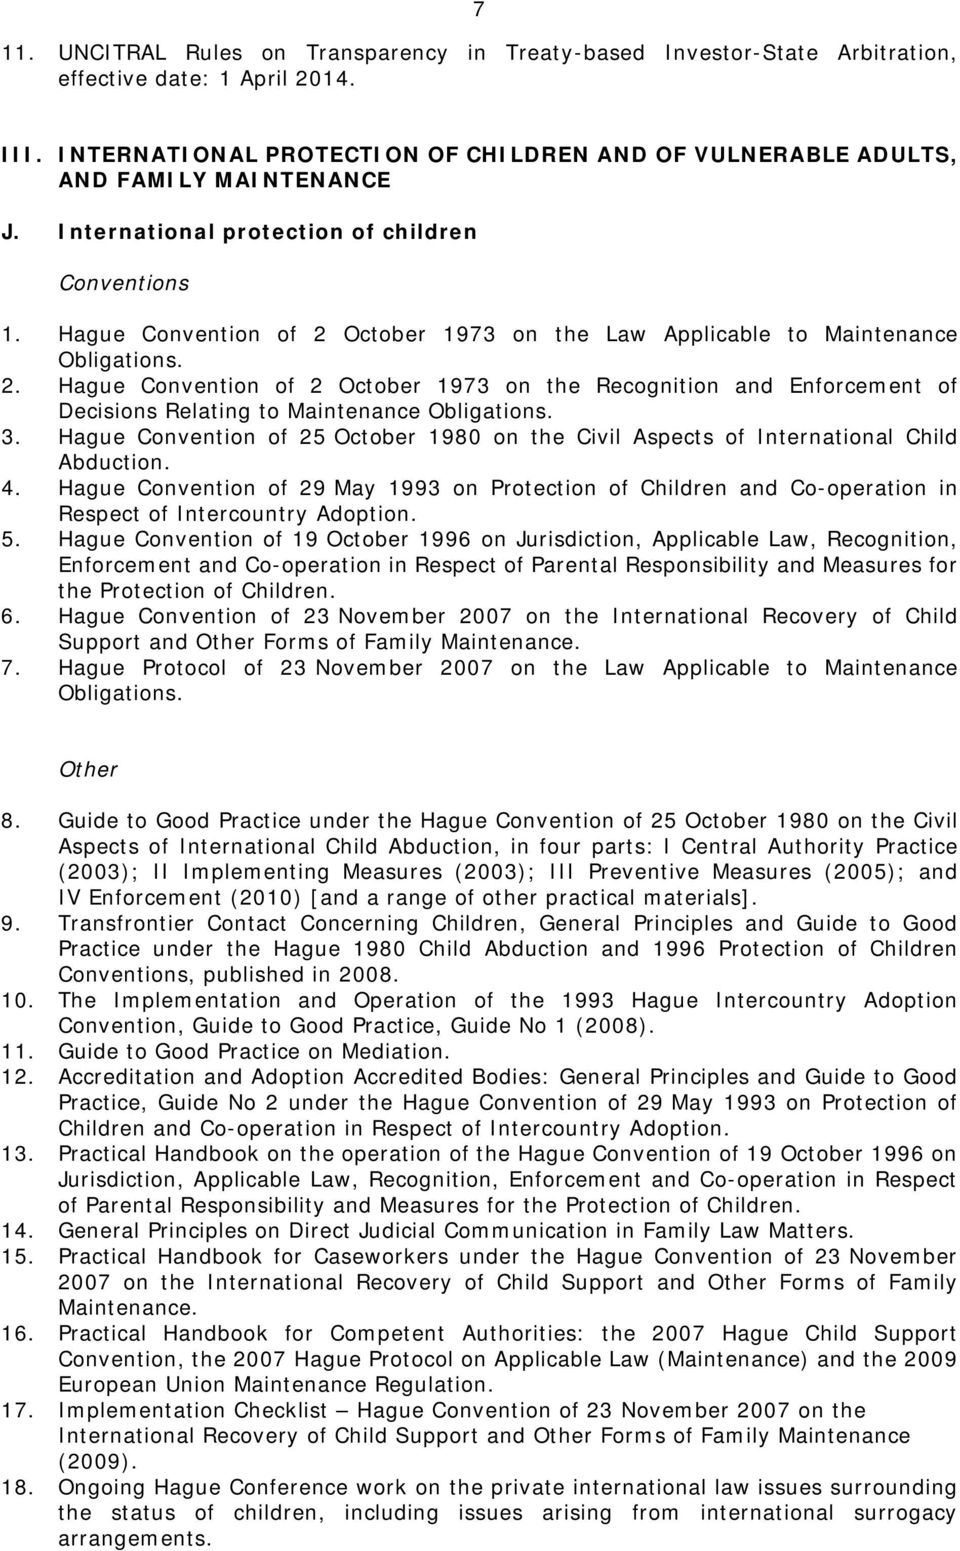 Hague Convention of 2 October 1973 on the Law Applicable to Maintenance Obligations. 2. Hague Convention of 2 October 1973 on the Recognition and Enforcement of Decisions Relating to Maintenance Obligations.